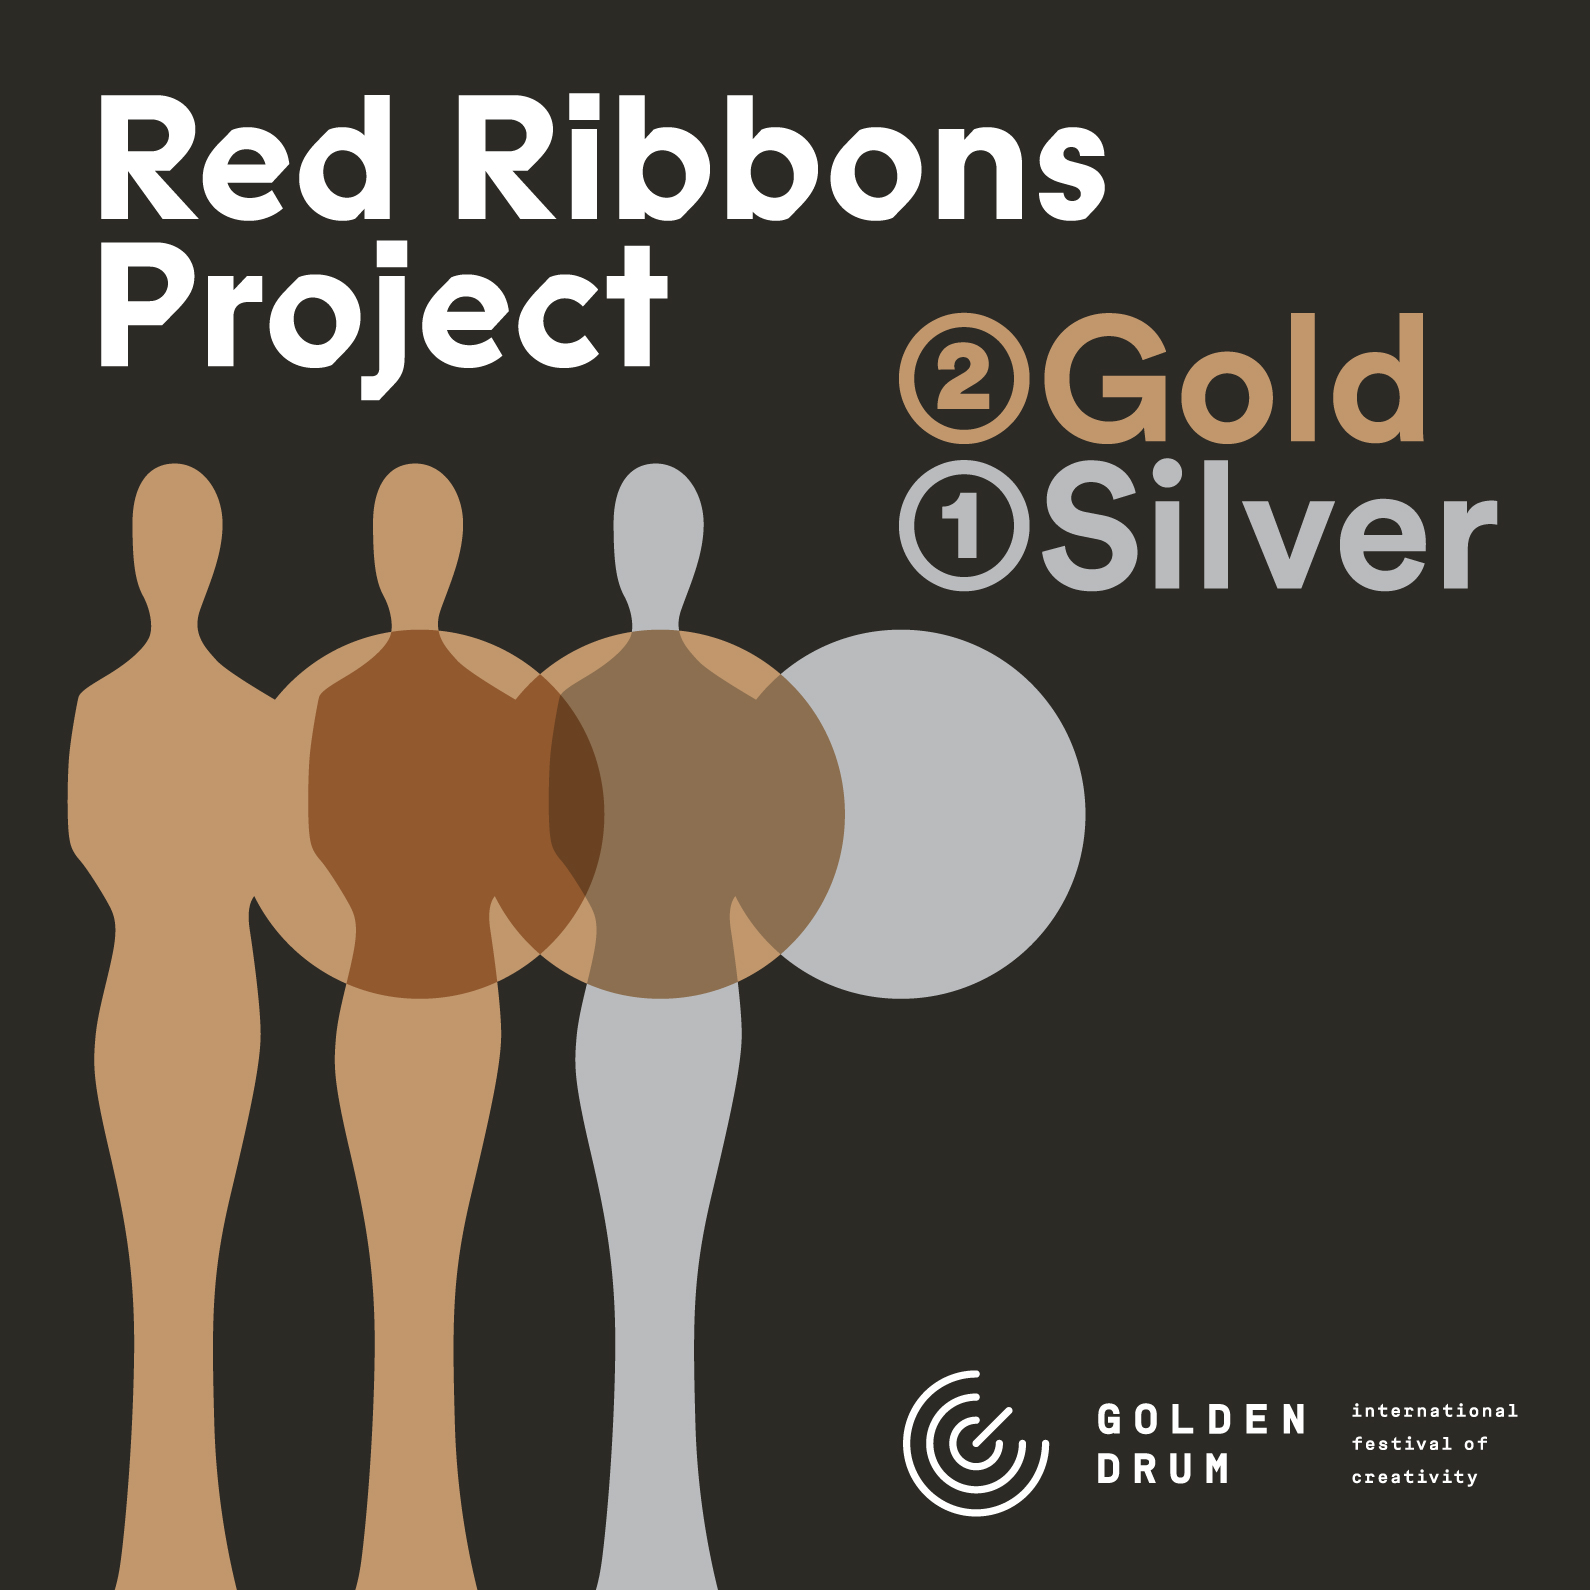 Mullenlowe Istanbul's Red Ribbons Project was honored with 2 Gold and   1 Silver Drum at the 2019 Golden Drum Awards.